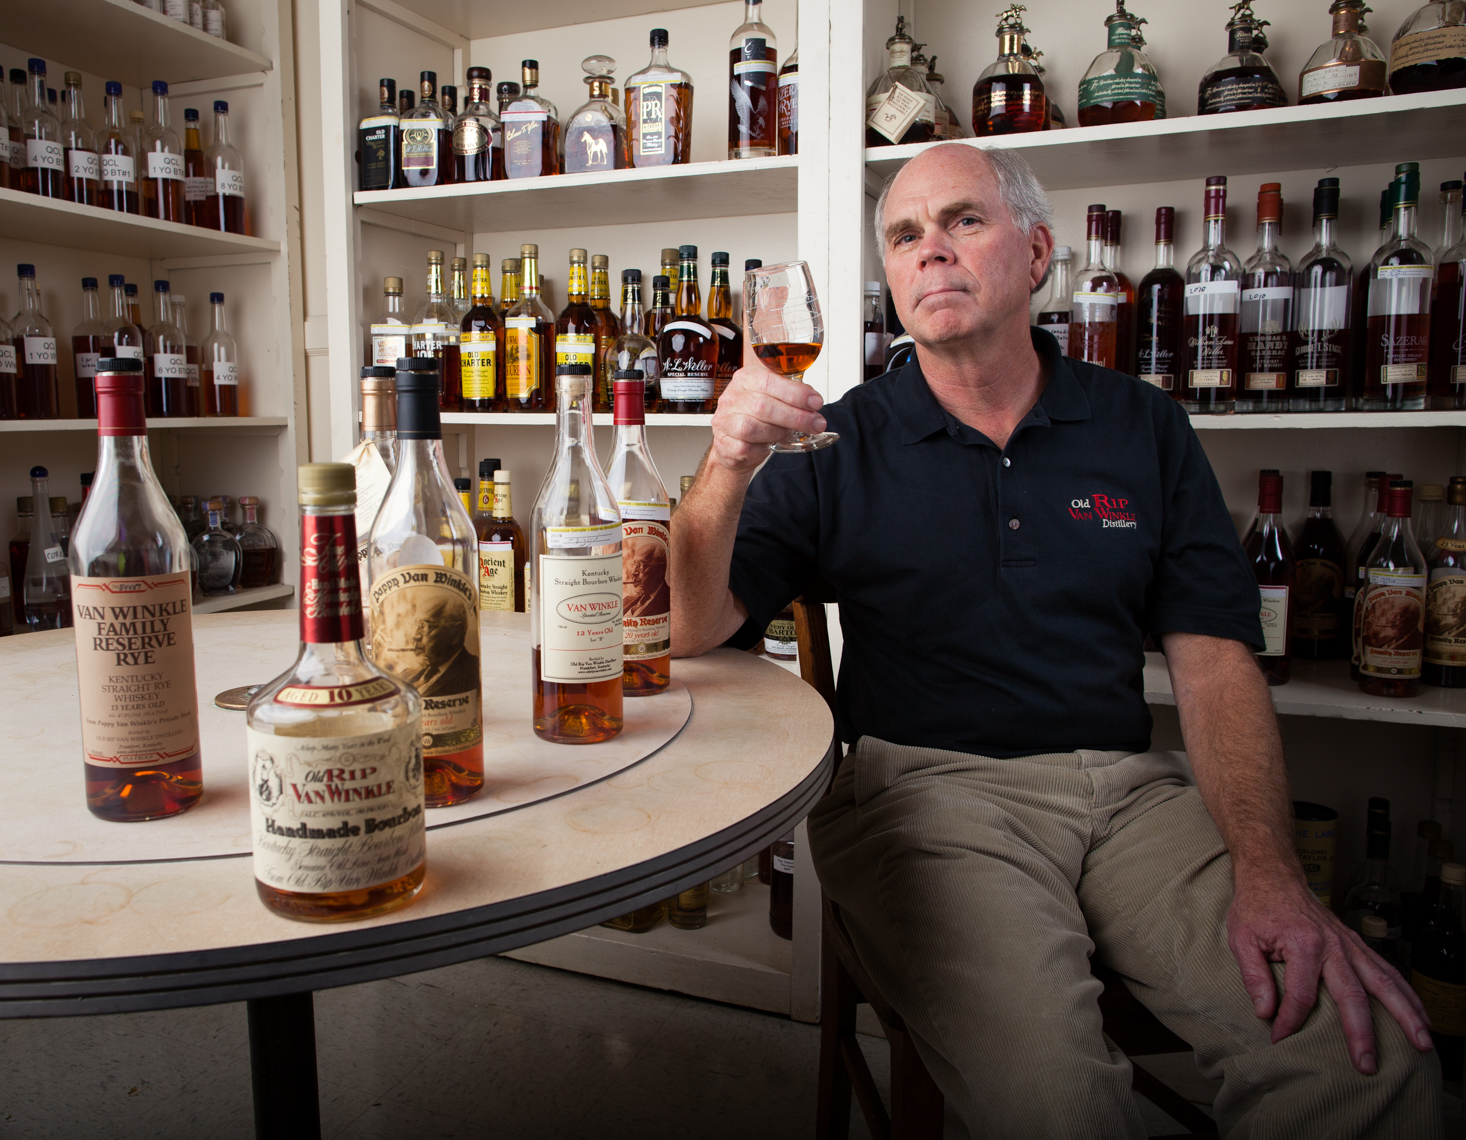 Julian Van Winkle - Pappy Van Winkle - Kentucky Bourbon Trail, Nashville portrait editorial beverage advertising photographer, Kristina Krug